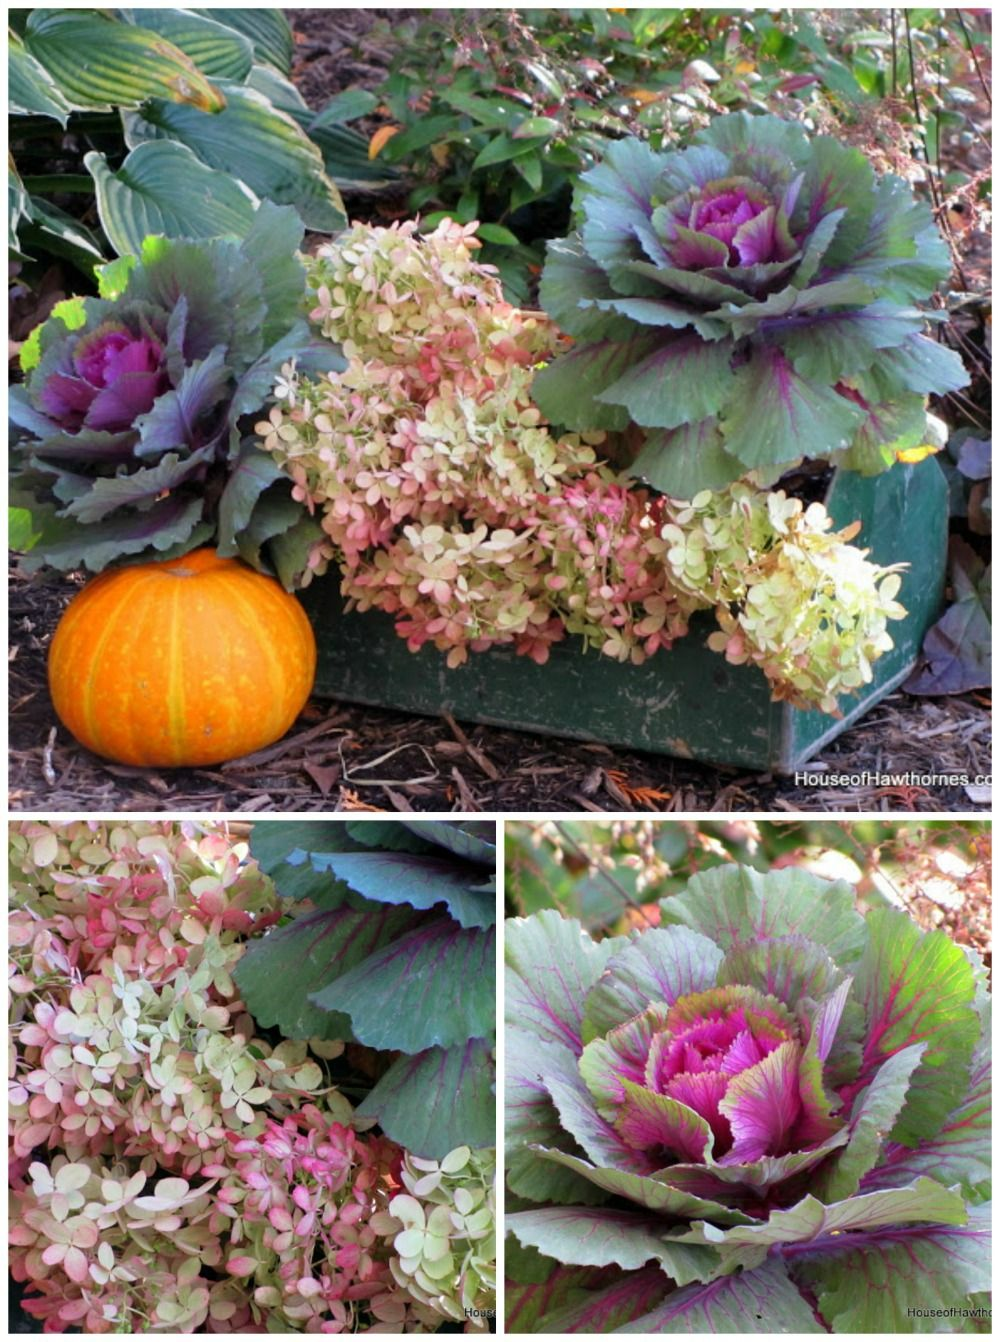 The gorgeous colors of fall. This rustic tool box combination would look great as a centerpiece on your fall table!